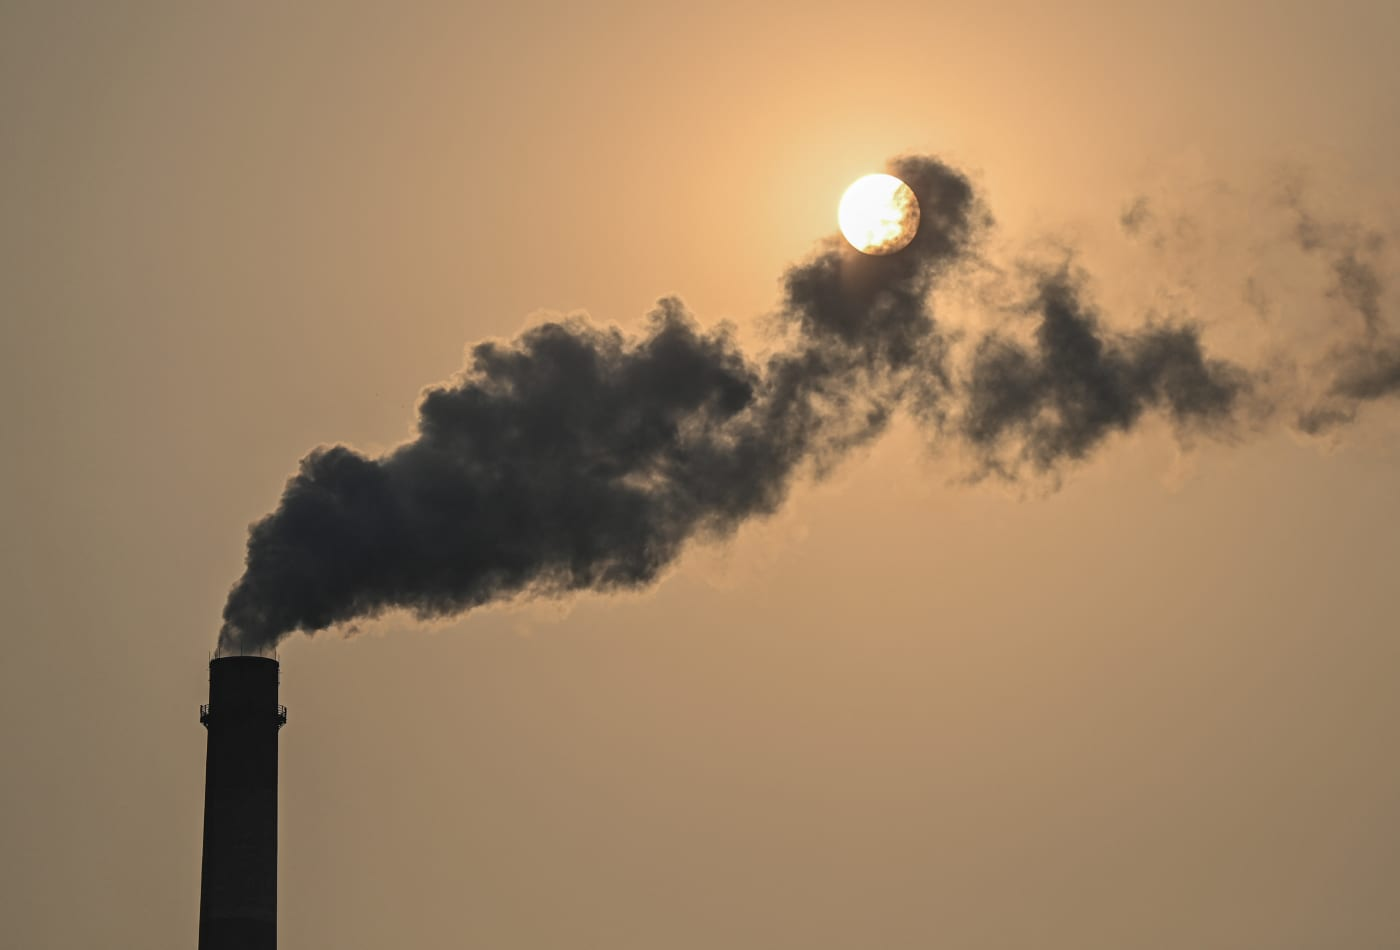 Faced with a power crisis, China may have 'little choice' but to ramp up coal consumption